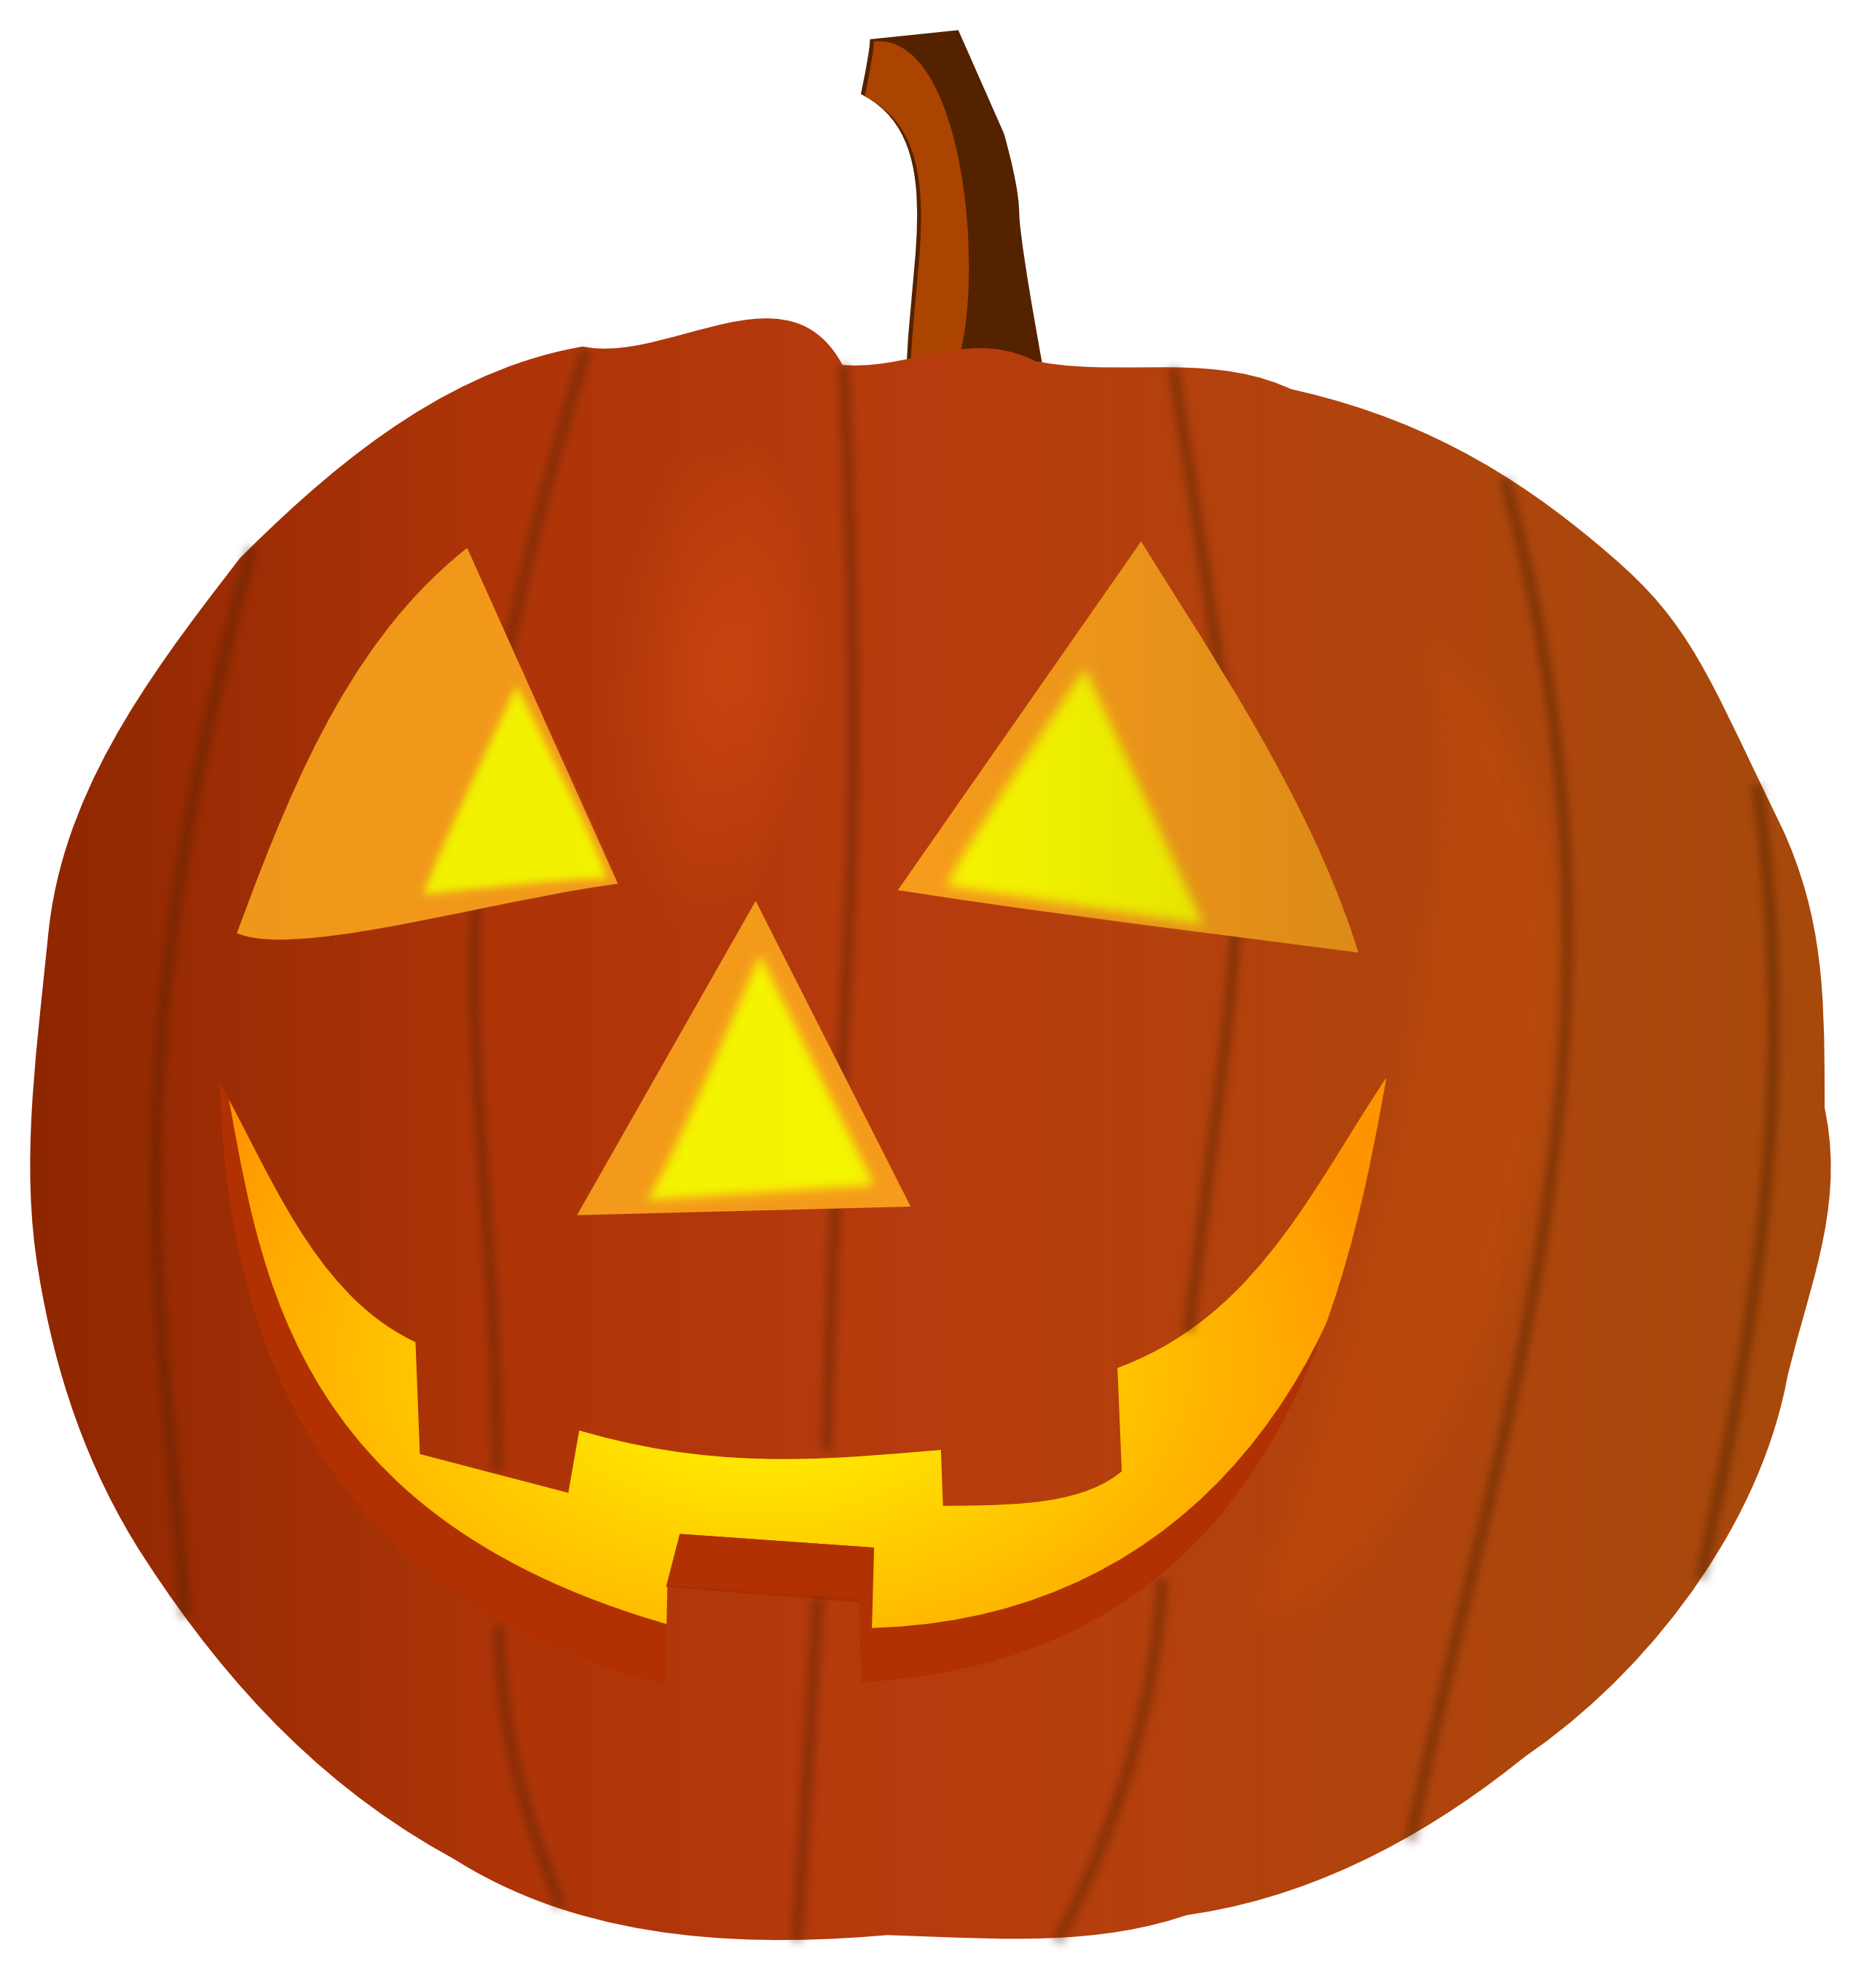 Halloween Pumpkin Carving Clip Art | Clipart Panda - Free ...